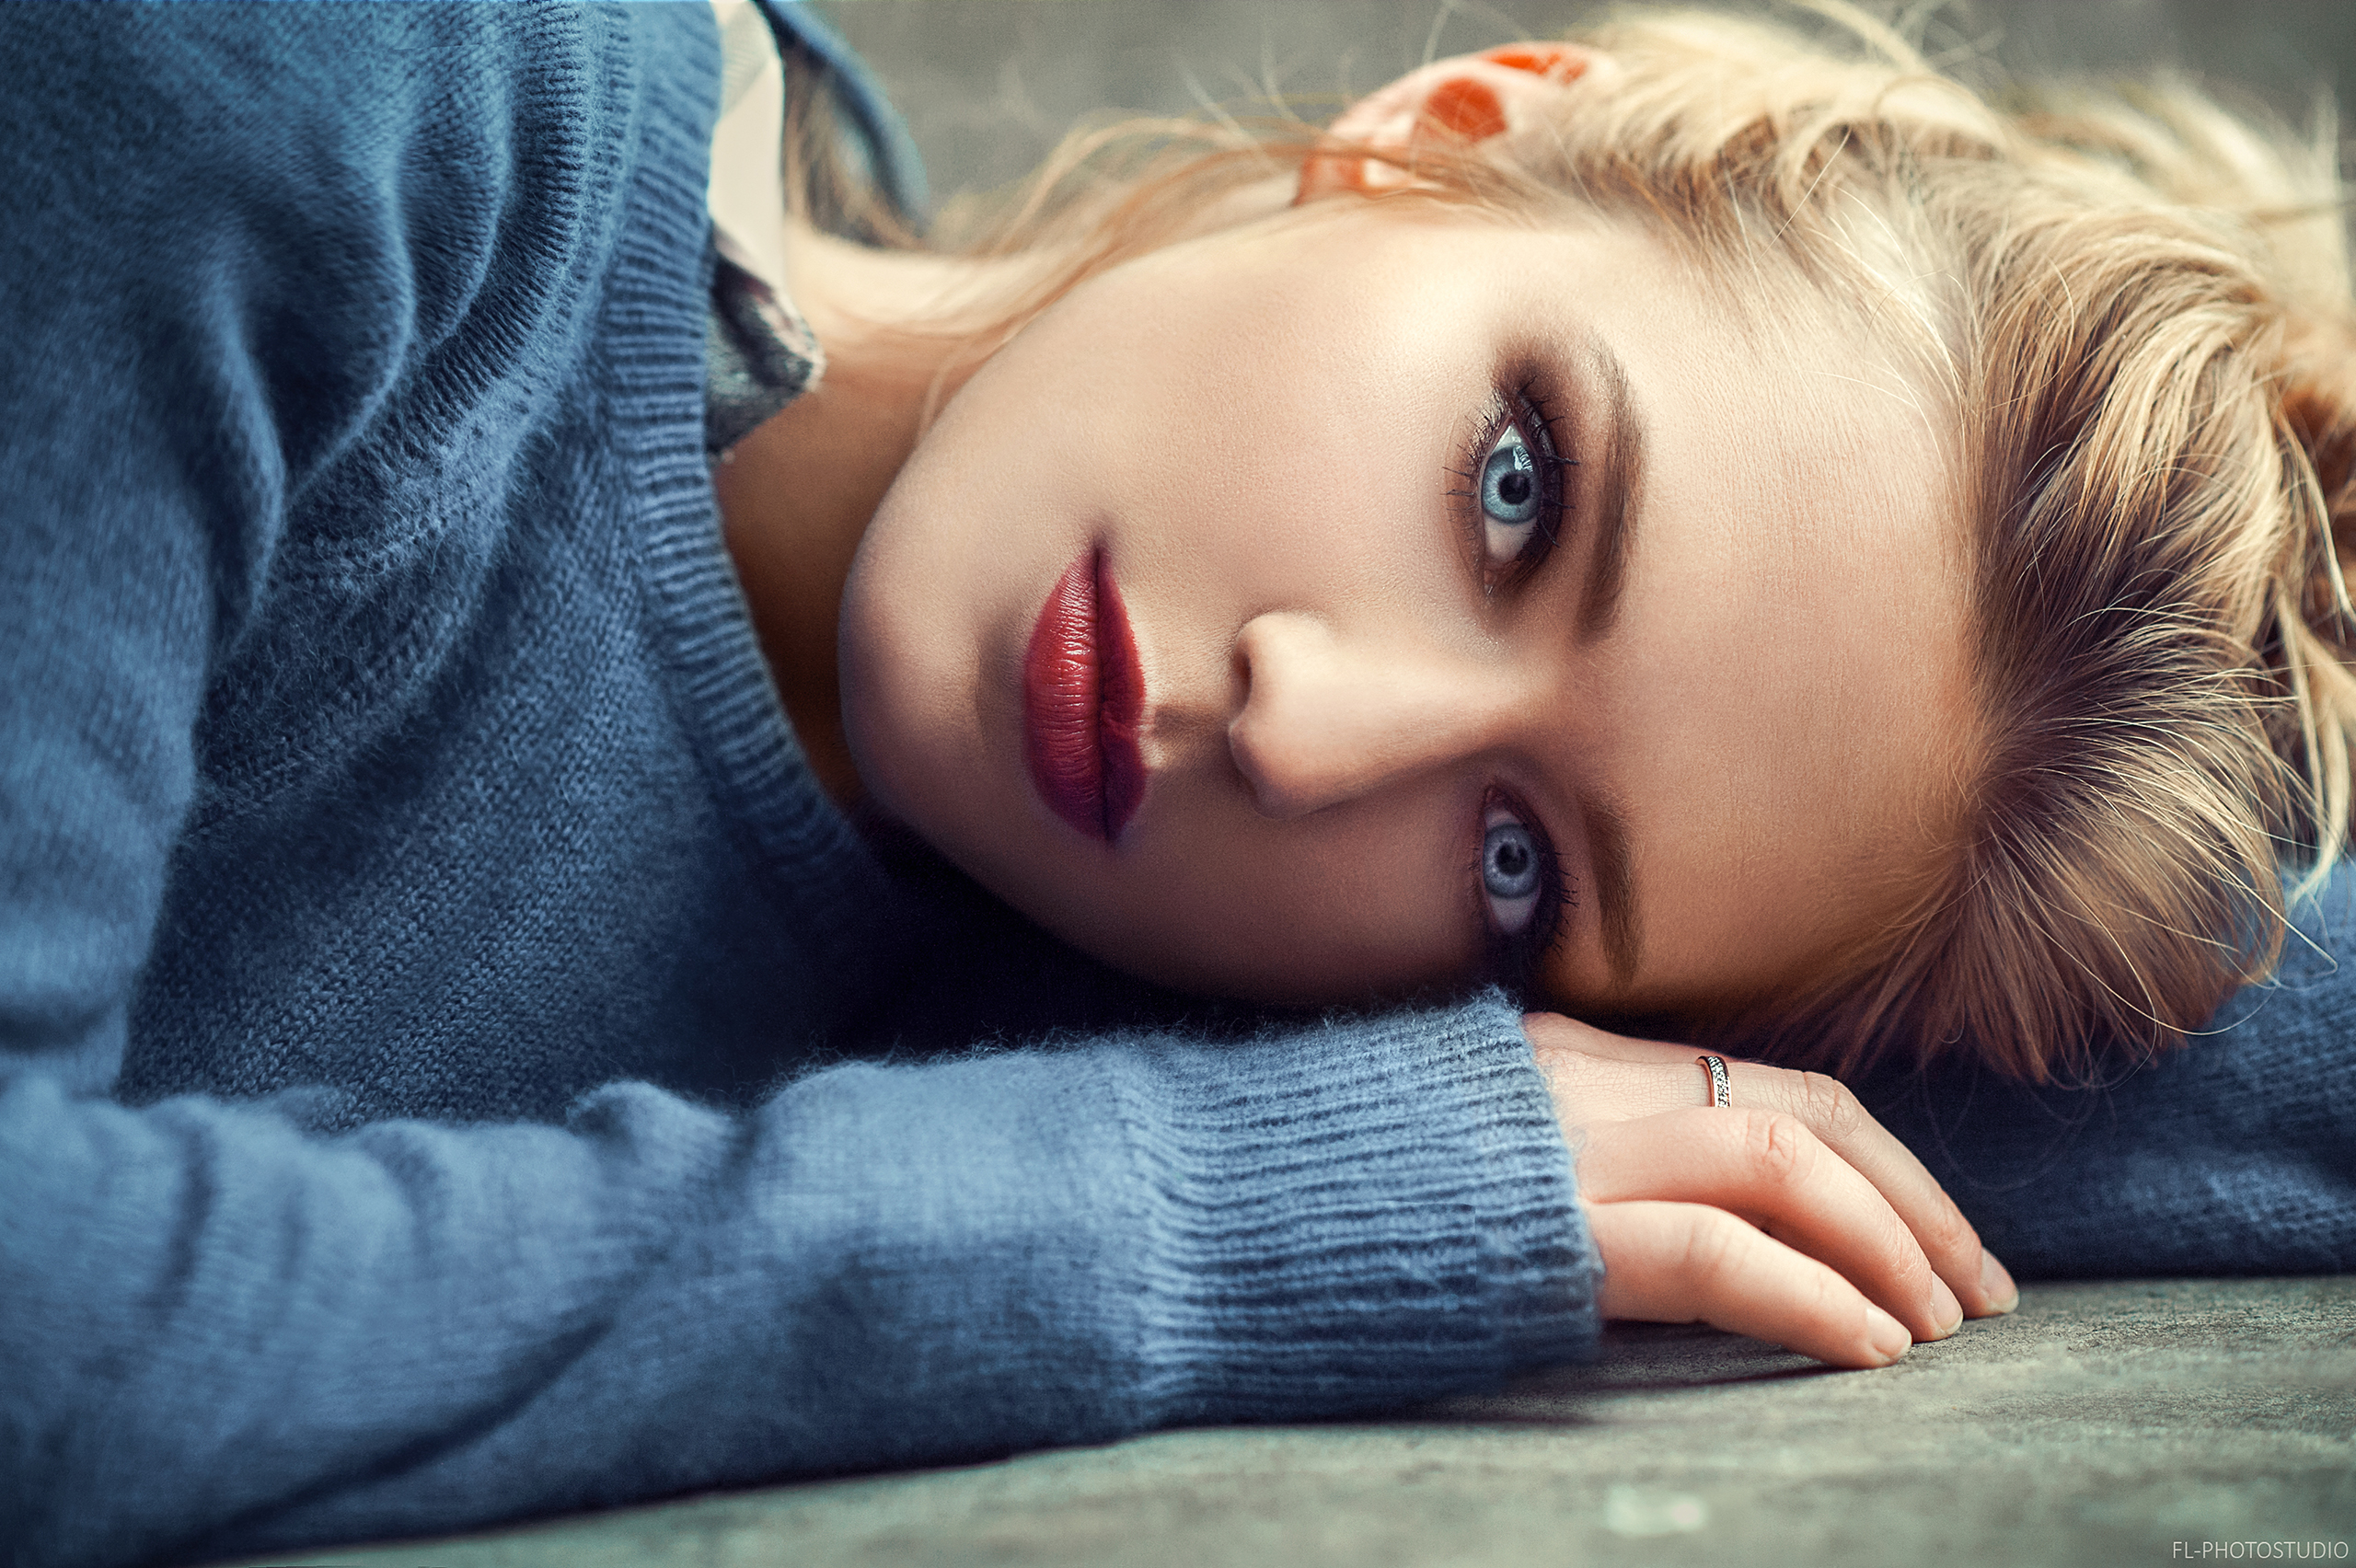 Blue Eyes Girl Hd Girls 4k Wallpapers Images Backgrounds Photos And Pictures